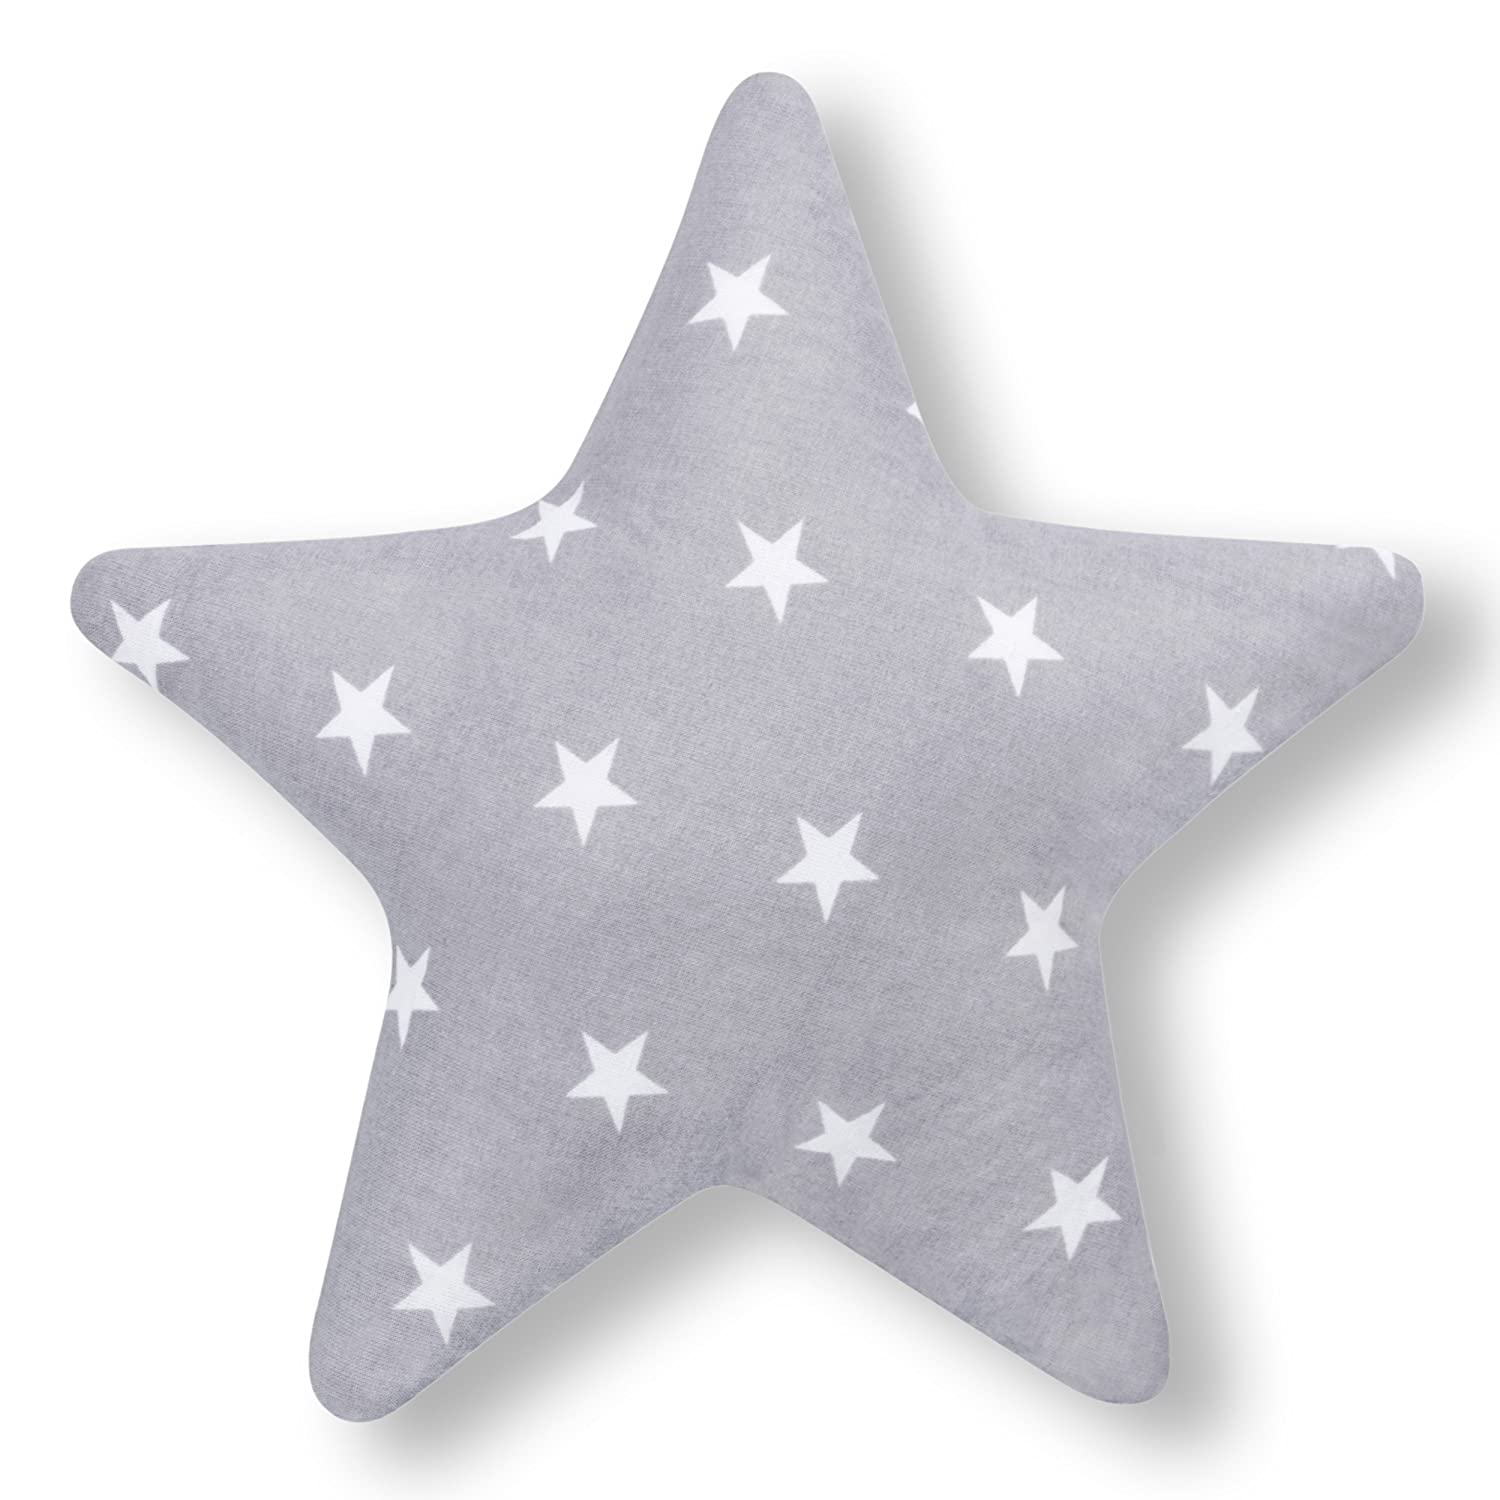 Amilian® Star Shaped Pillow Cushion Two Sided Fleece/100% Cotton Cosy Fluffy, Star Print Grey Approx 28 cm